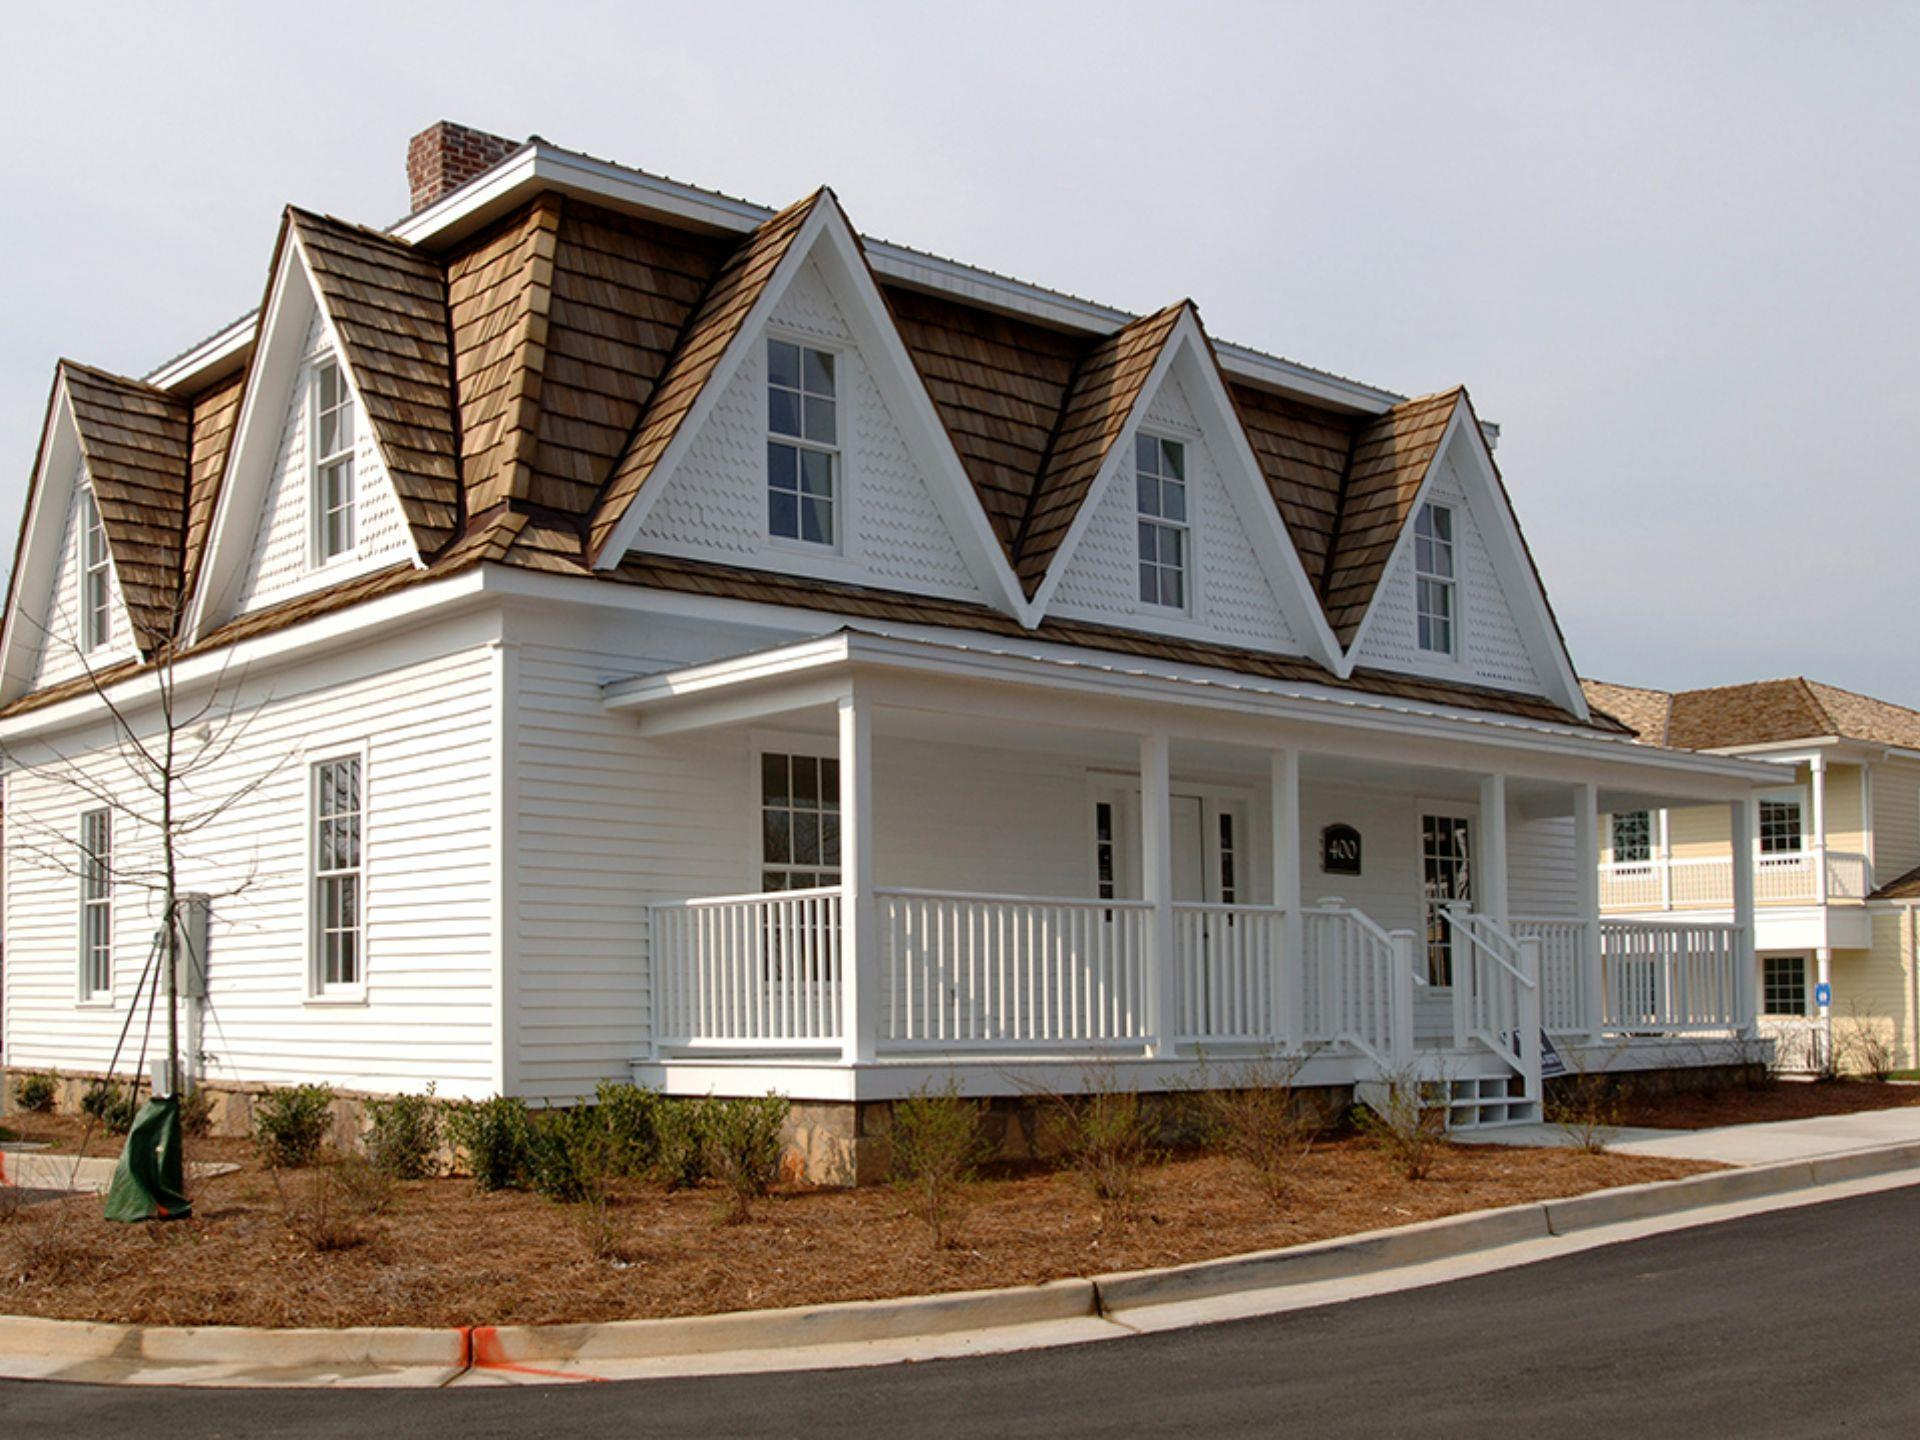 outside of white cottage looking house with widows peak windows on second floor